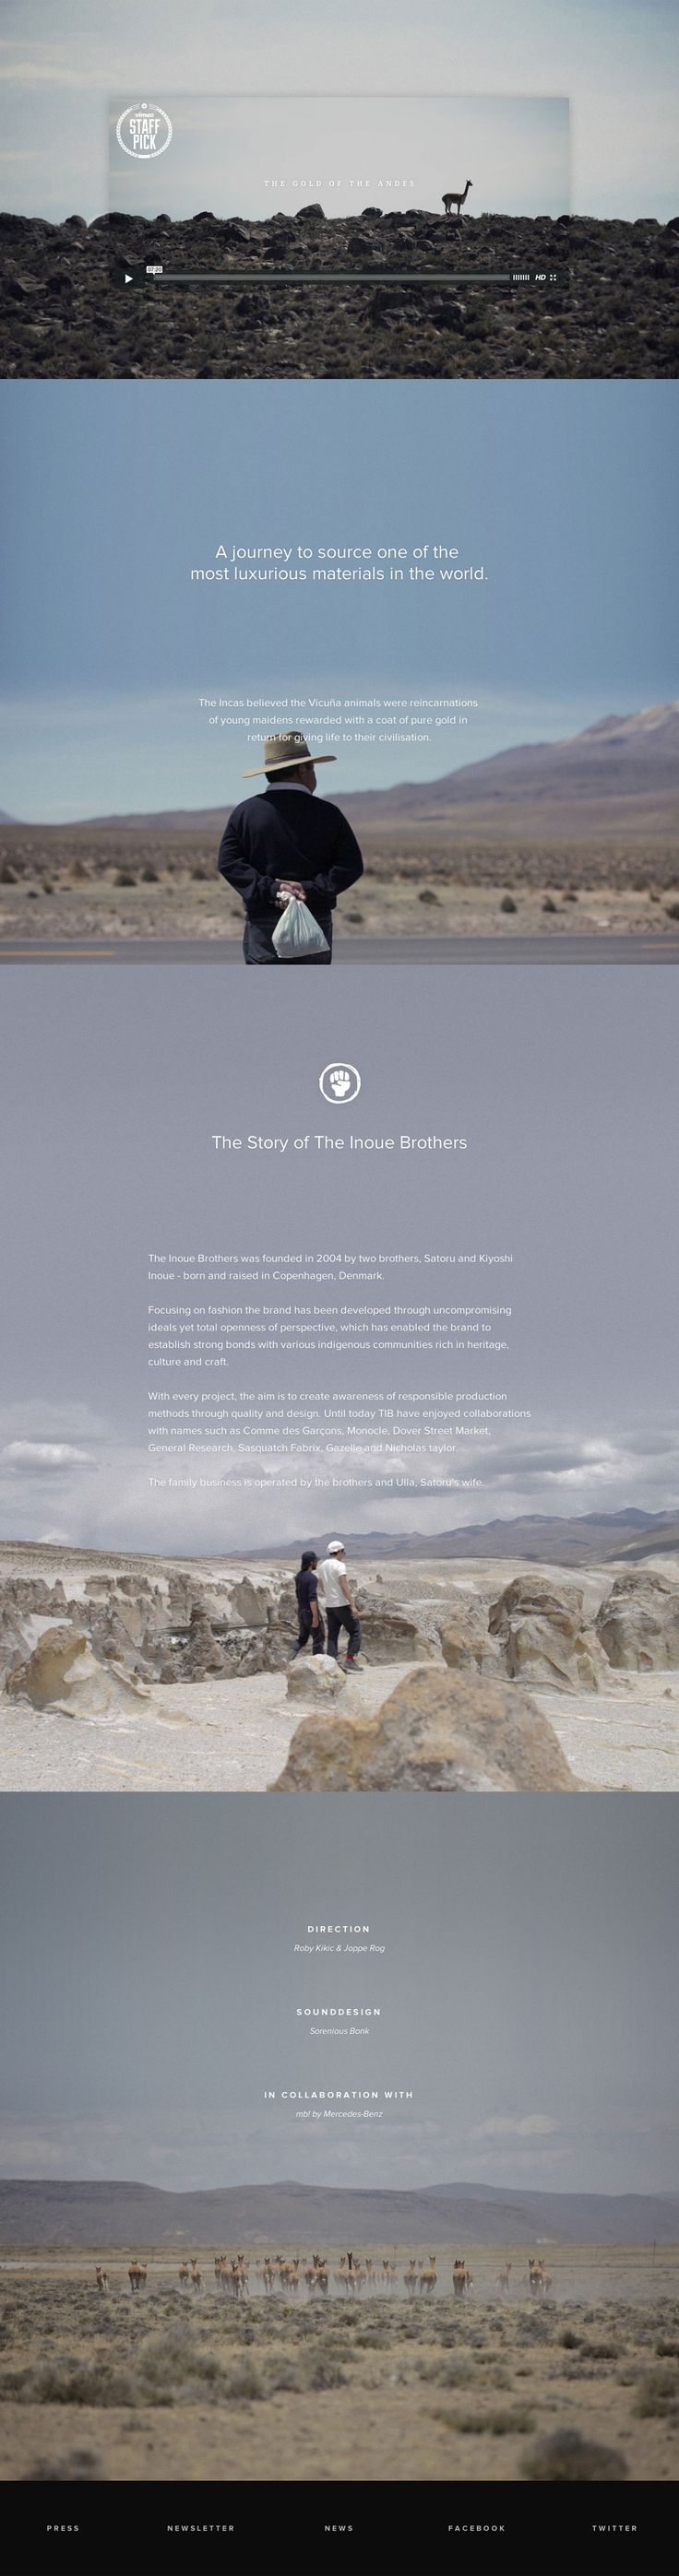 Beautiful big imagery in this landing page for the first in a series of short films. The films are about a journey to source one of the most luxurious materials in the world. The Incas believed the Vicuña animals were reincarnations of young maidens rewarded with a coat of pure gold in return for giving life to their civilisation. They called it The Gold Of The Andes